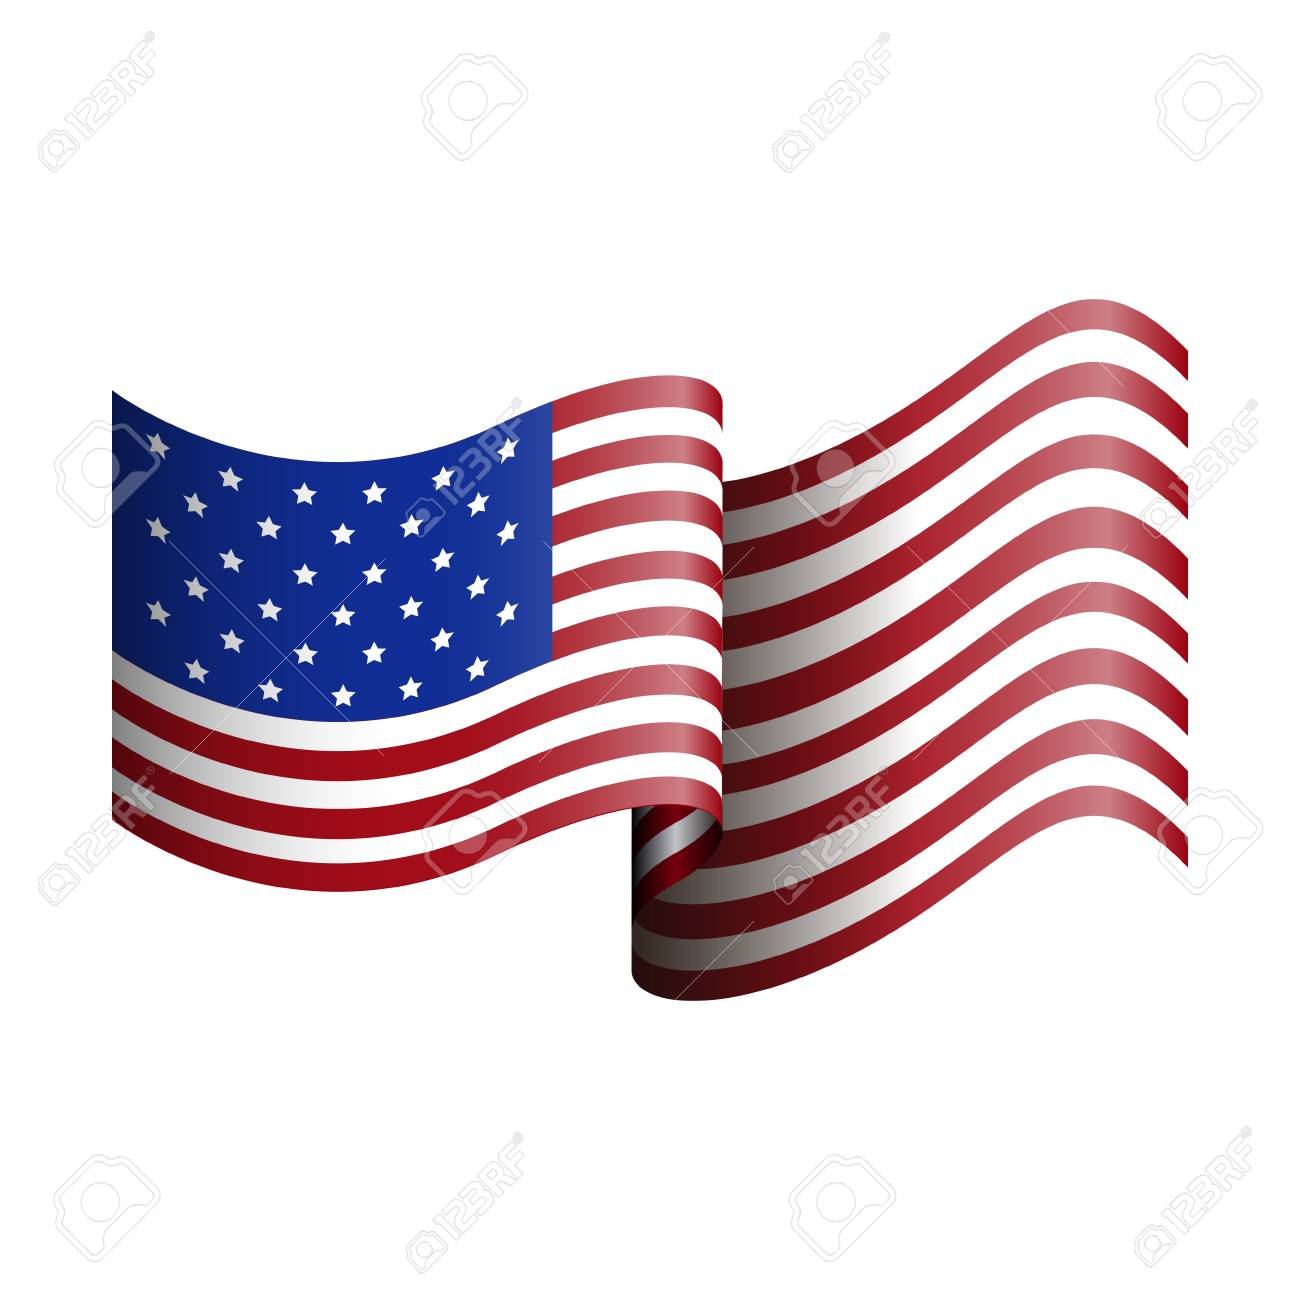 hight resolution of isolated american flag on a white background vector illustration stock vector 68918206